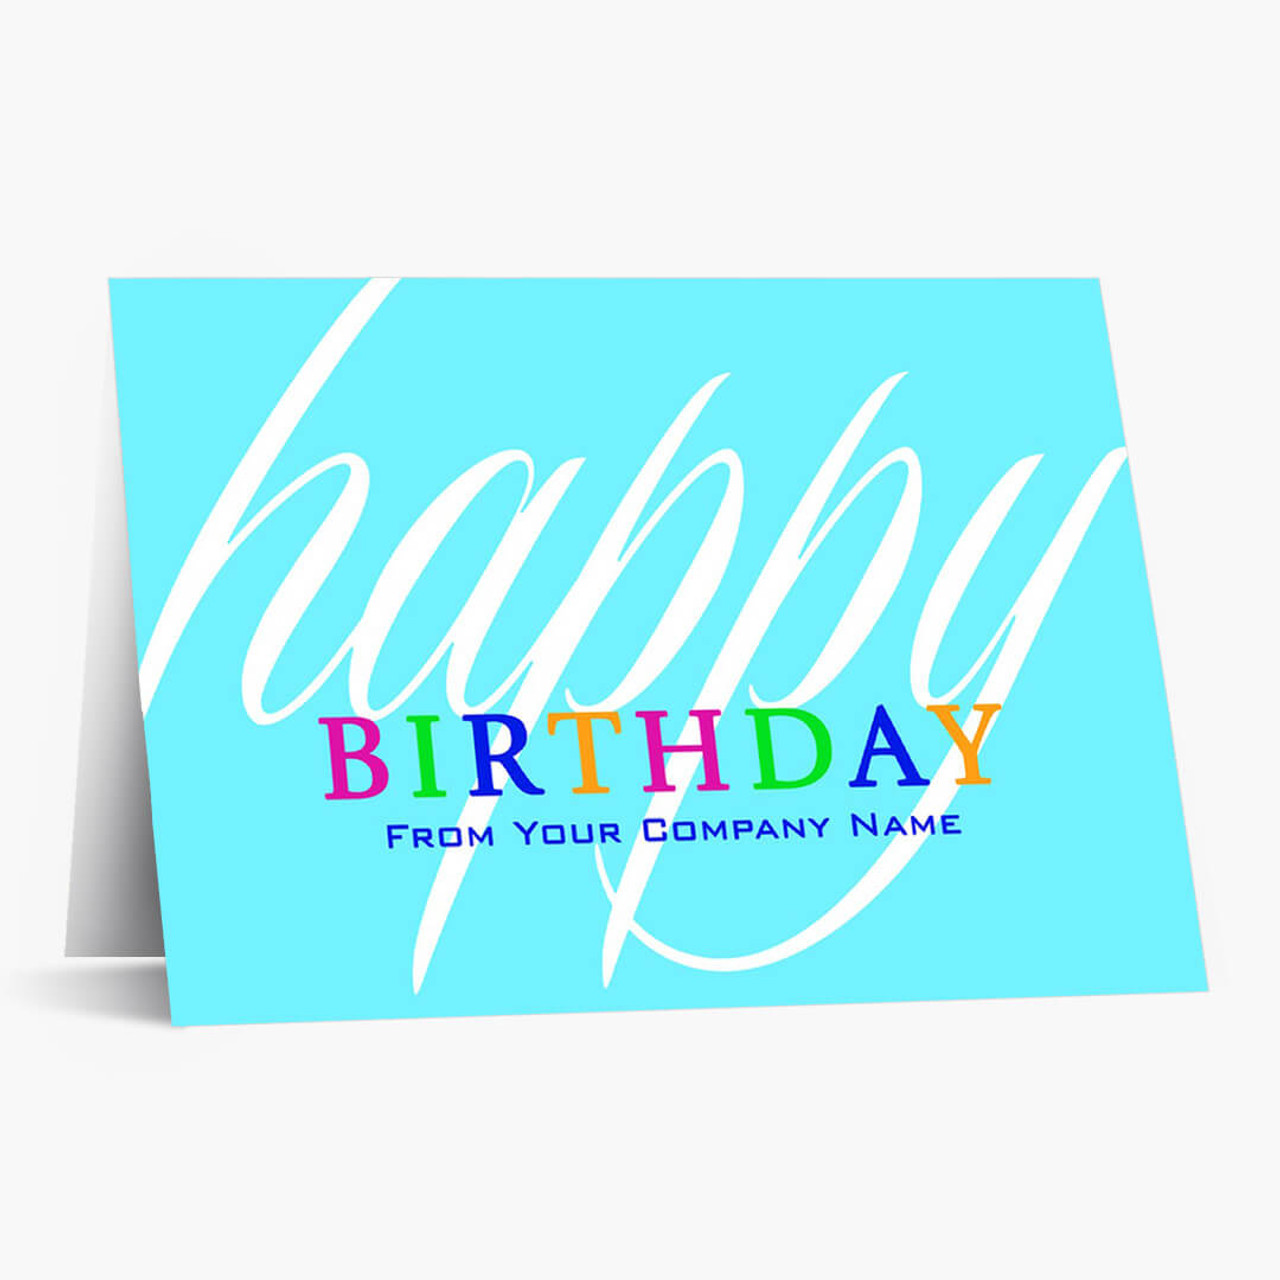 Colorful Birthday Wishes Card